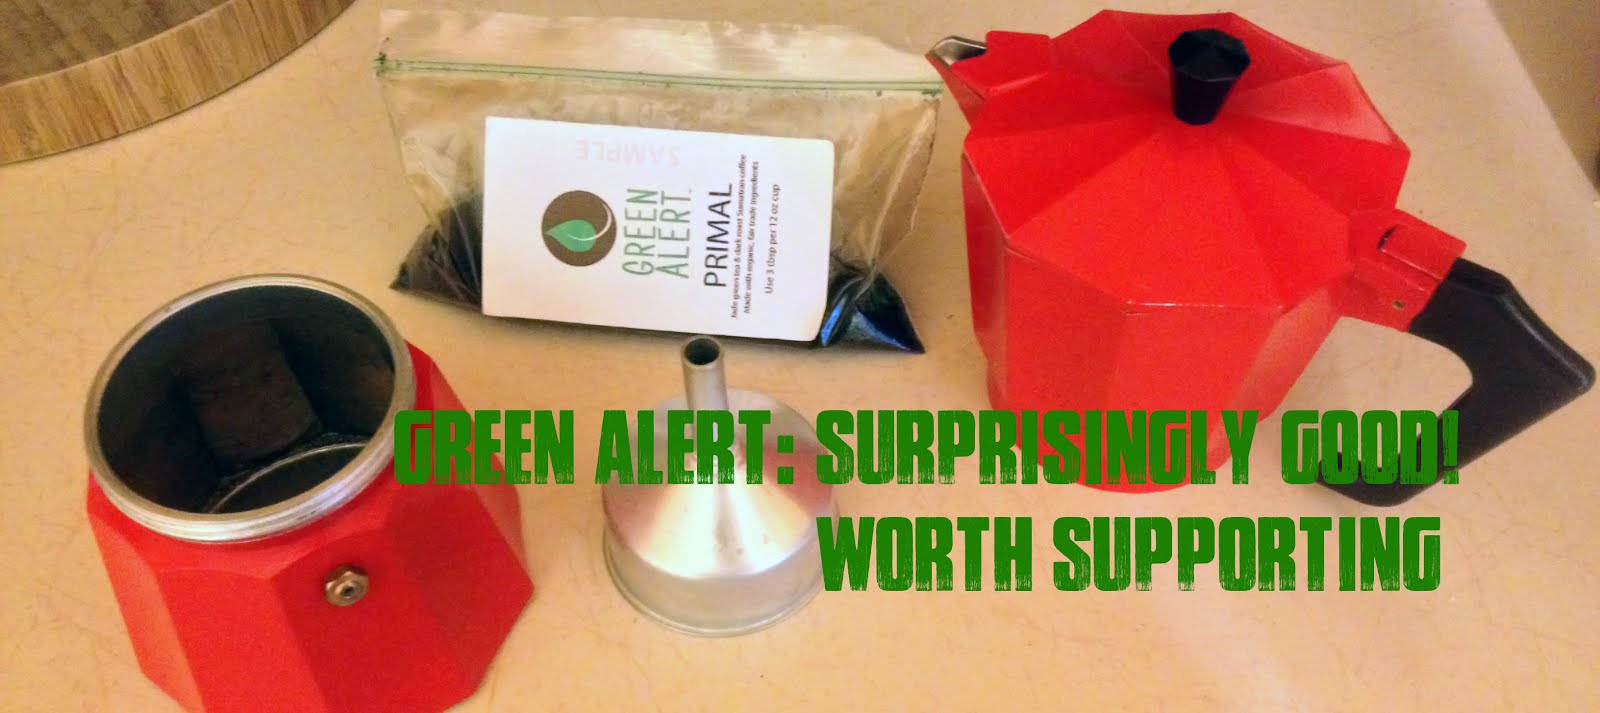 Green Alert: Surprisingly Good, Worth Supporting